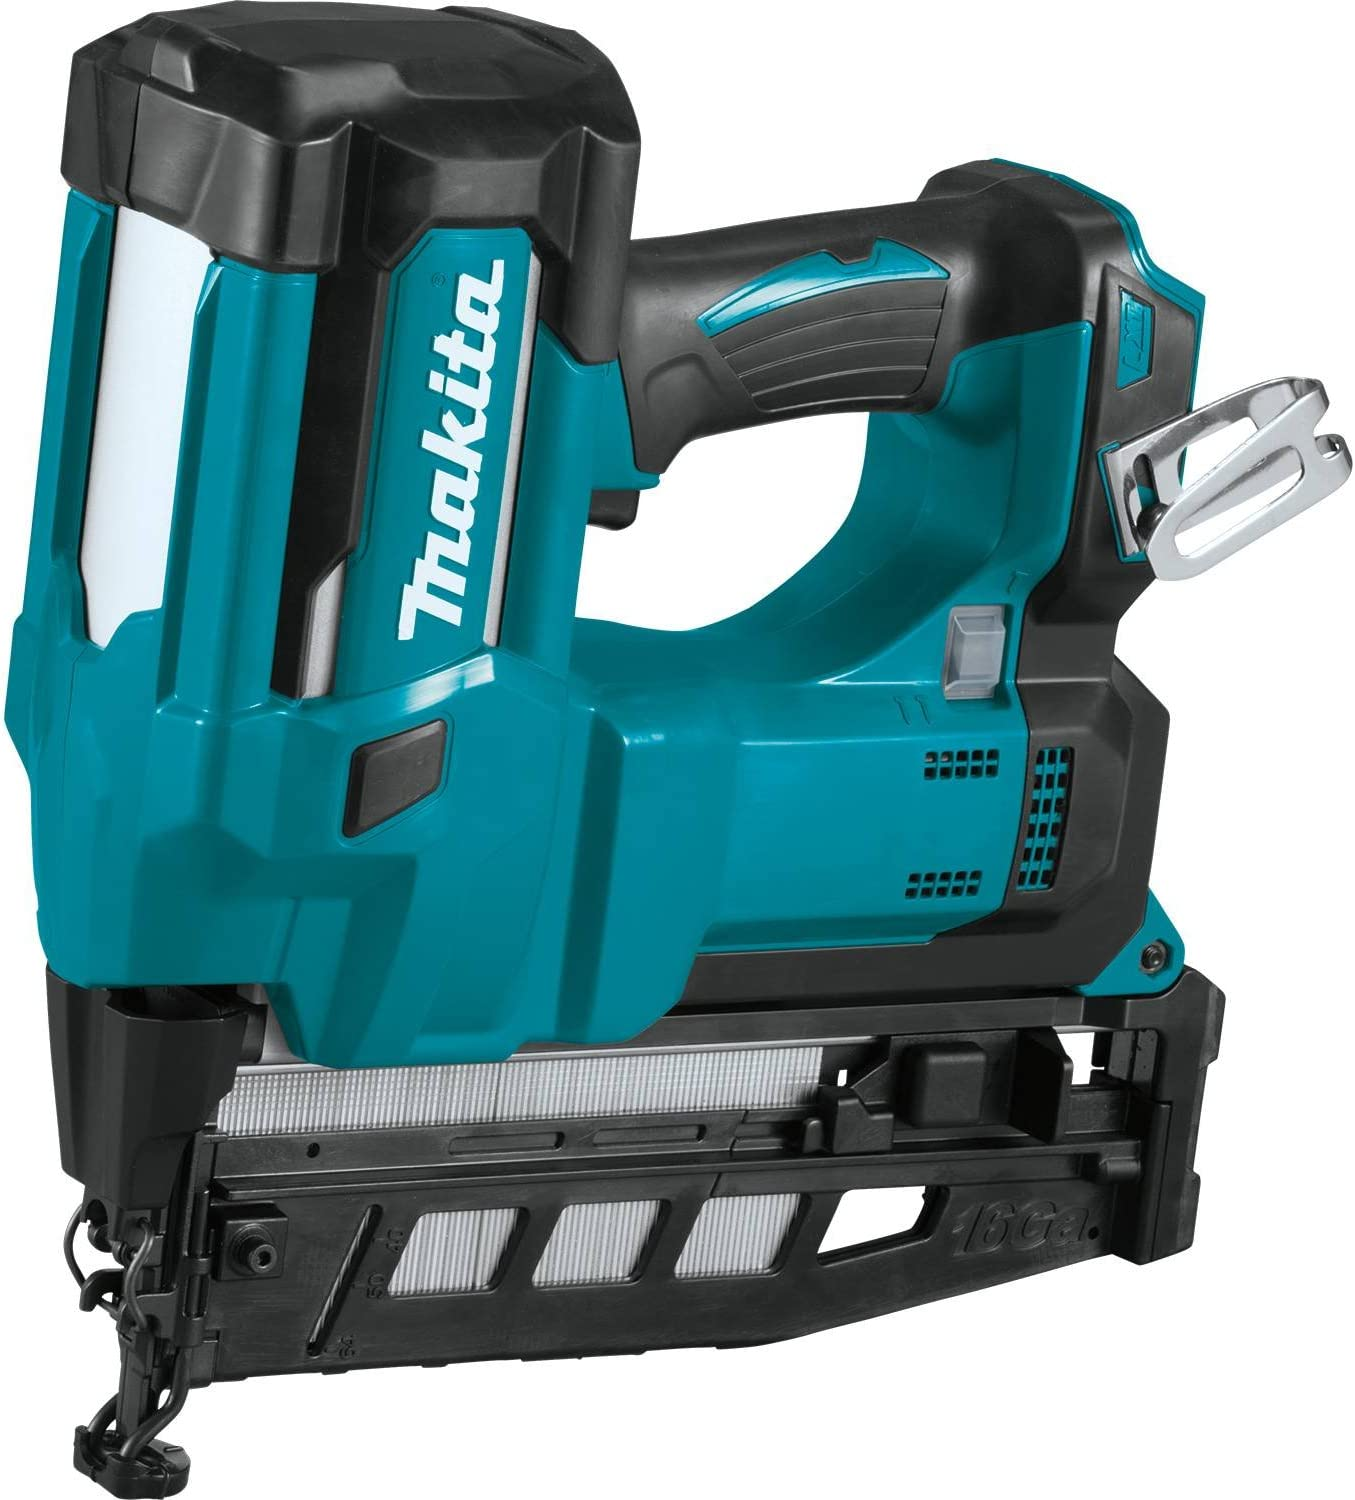 Makita 18V LXT Straight Finish Nailer